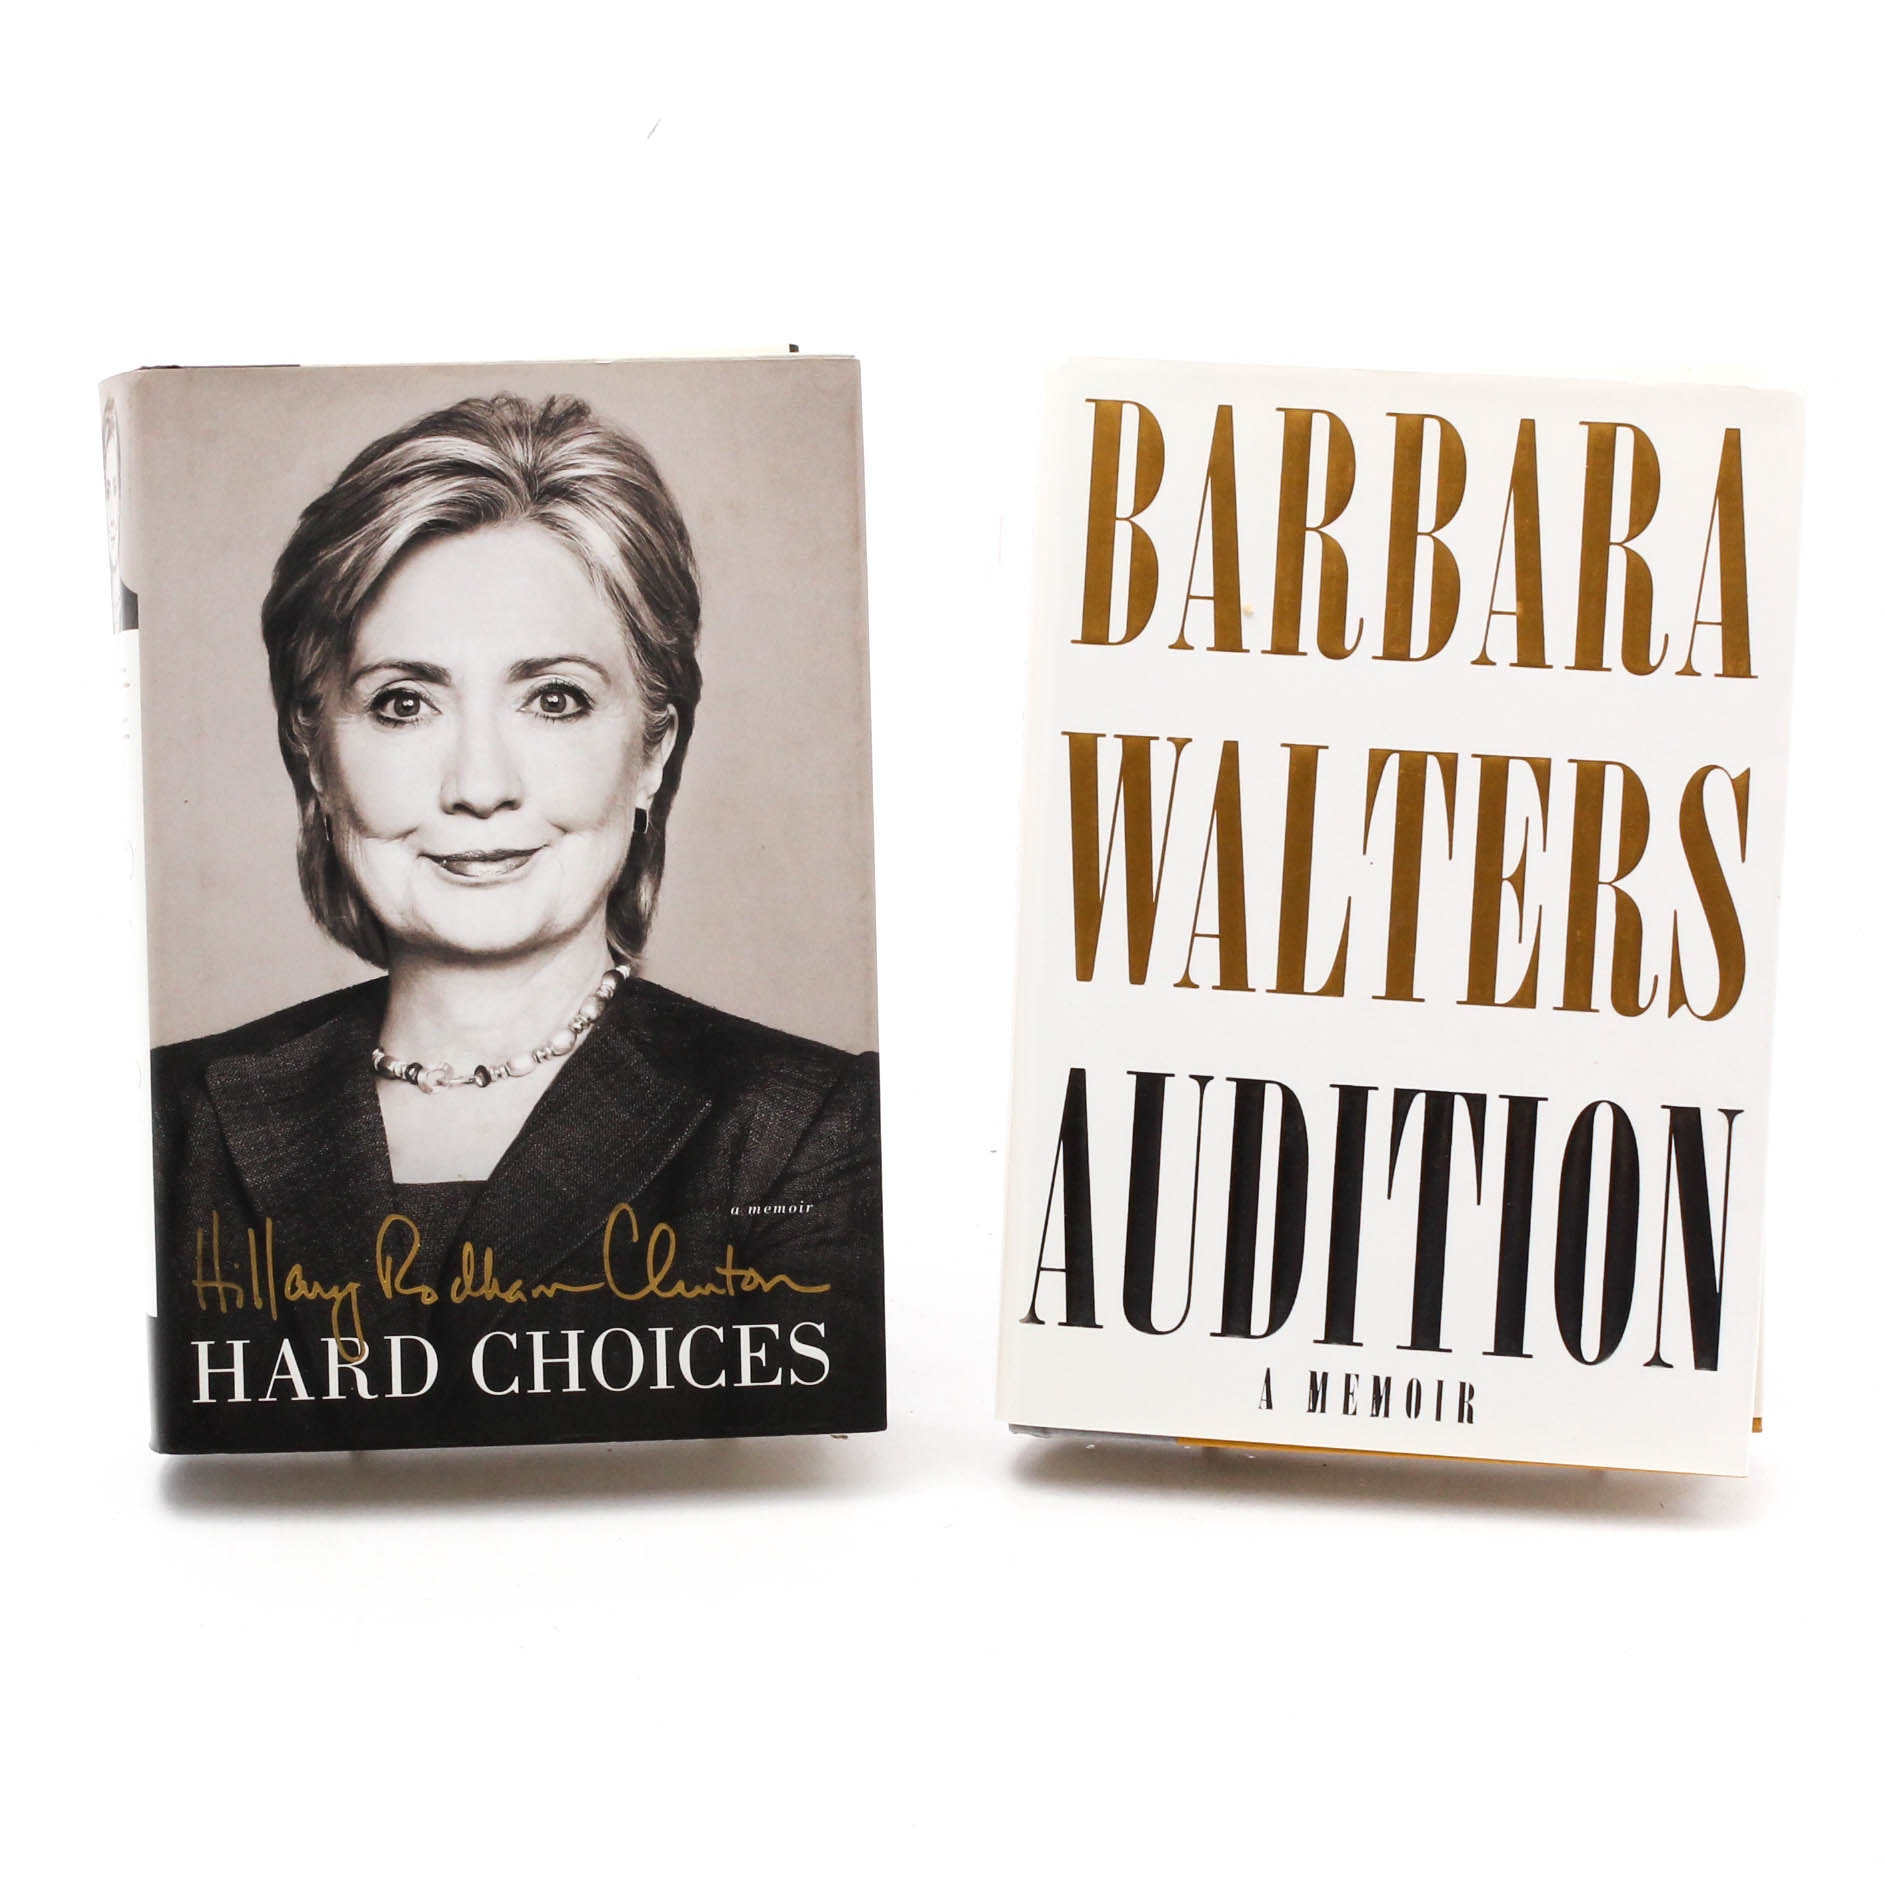 Signed First Editions by Hillary Clinton and Barbara Walters